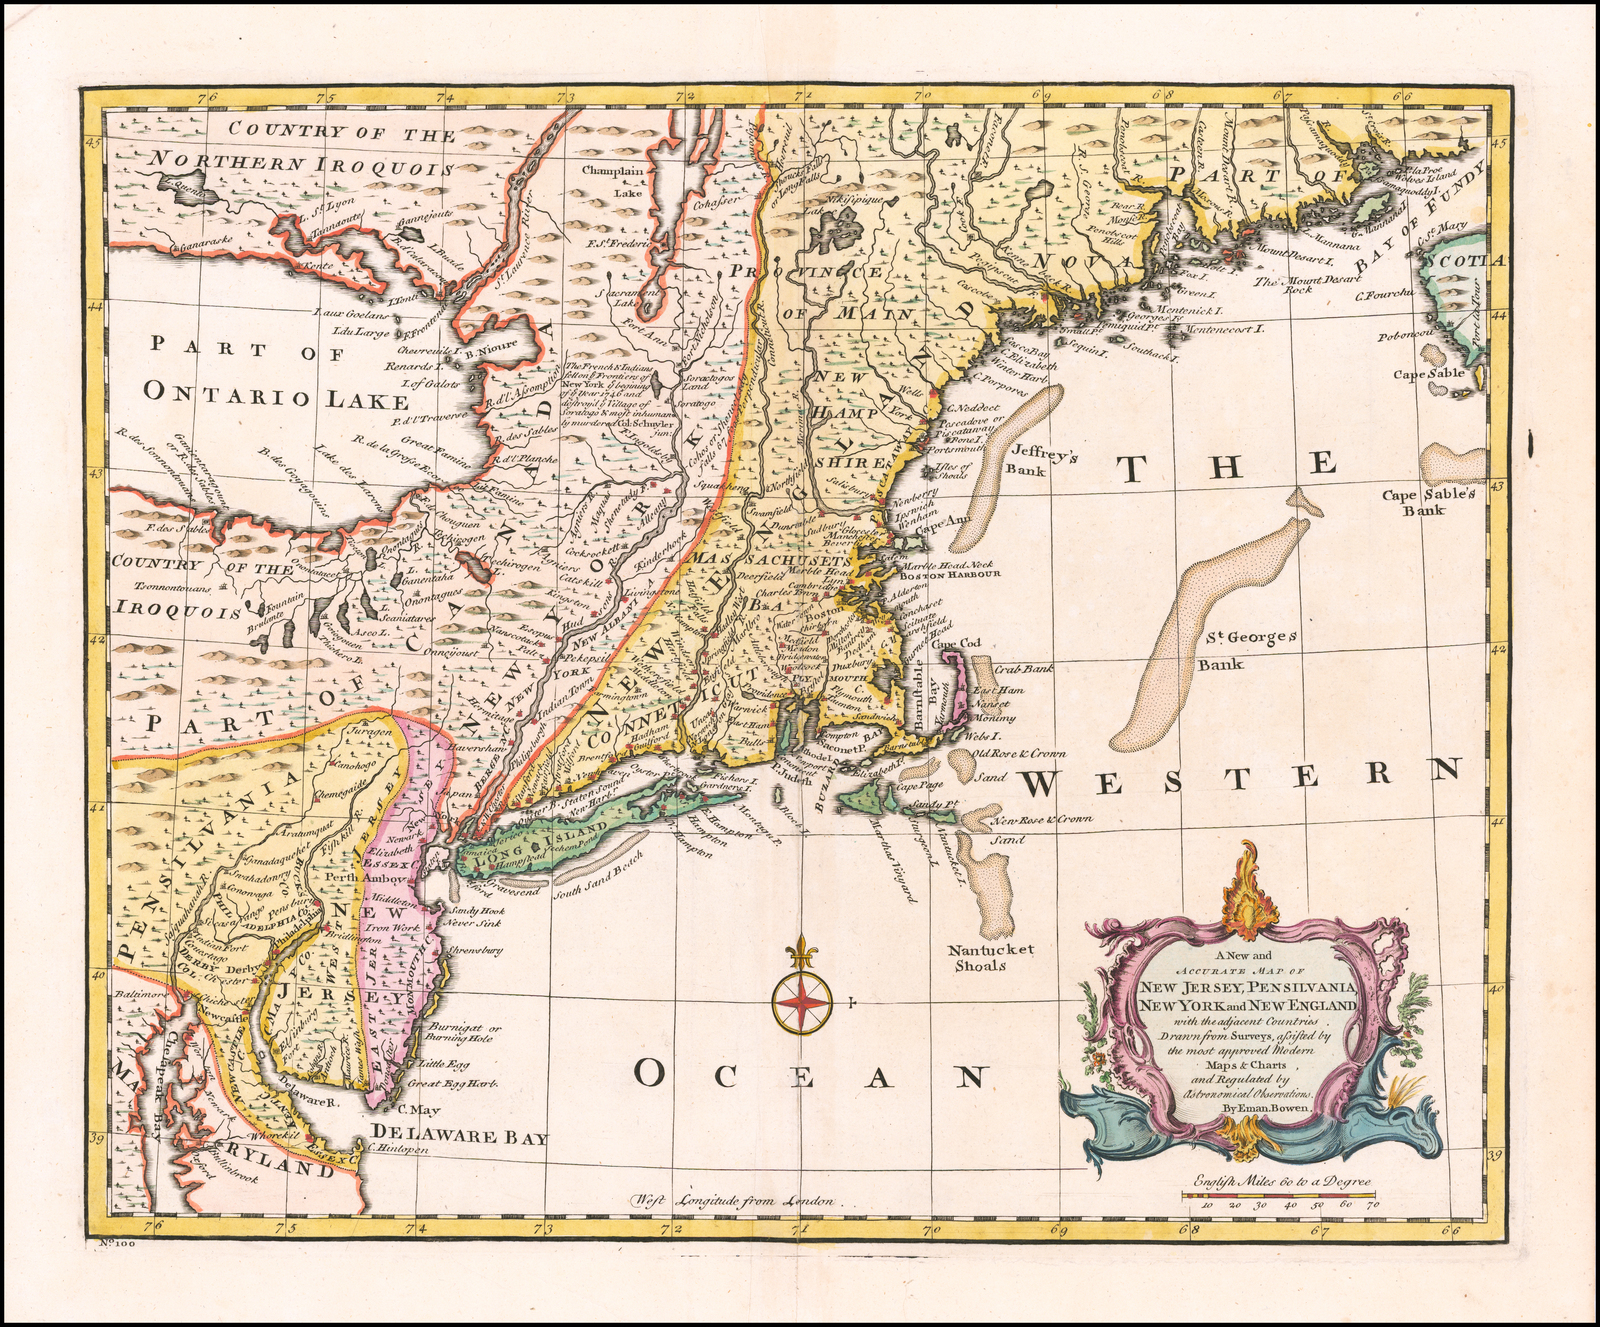 A New and Accurate Map of New Jersey, Pensilvania, New York ...